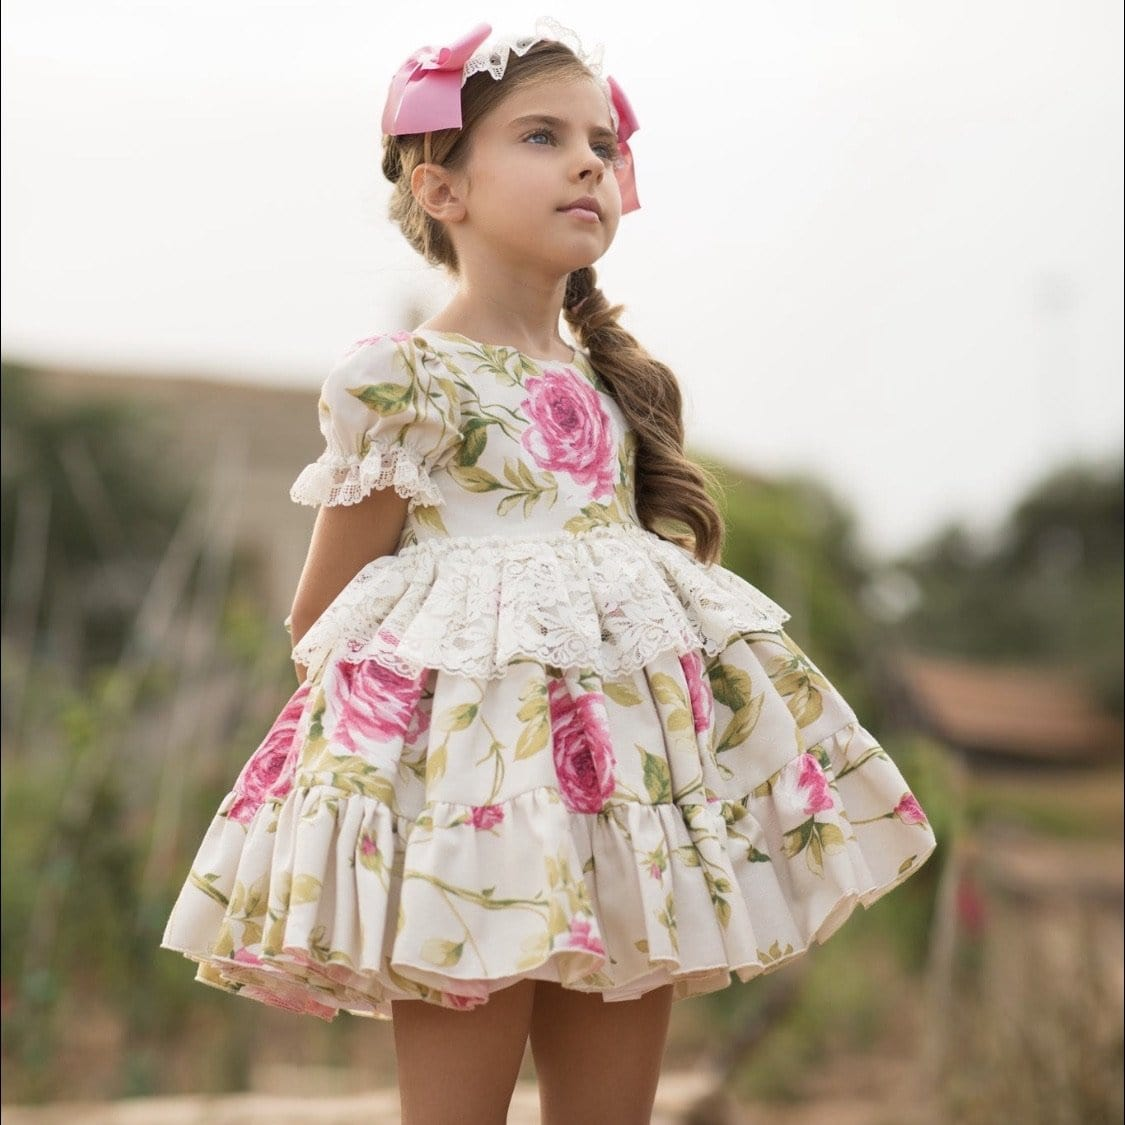 PRE ORDER EXCLUSIVE DANDELION MERICHE PUFFBALL DRESS